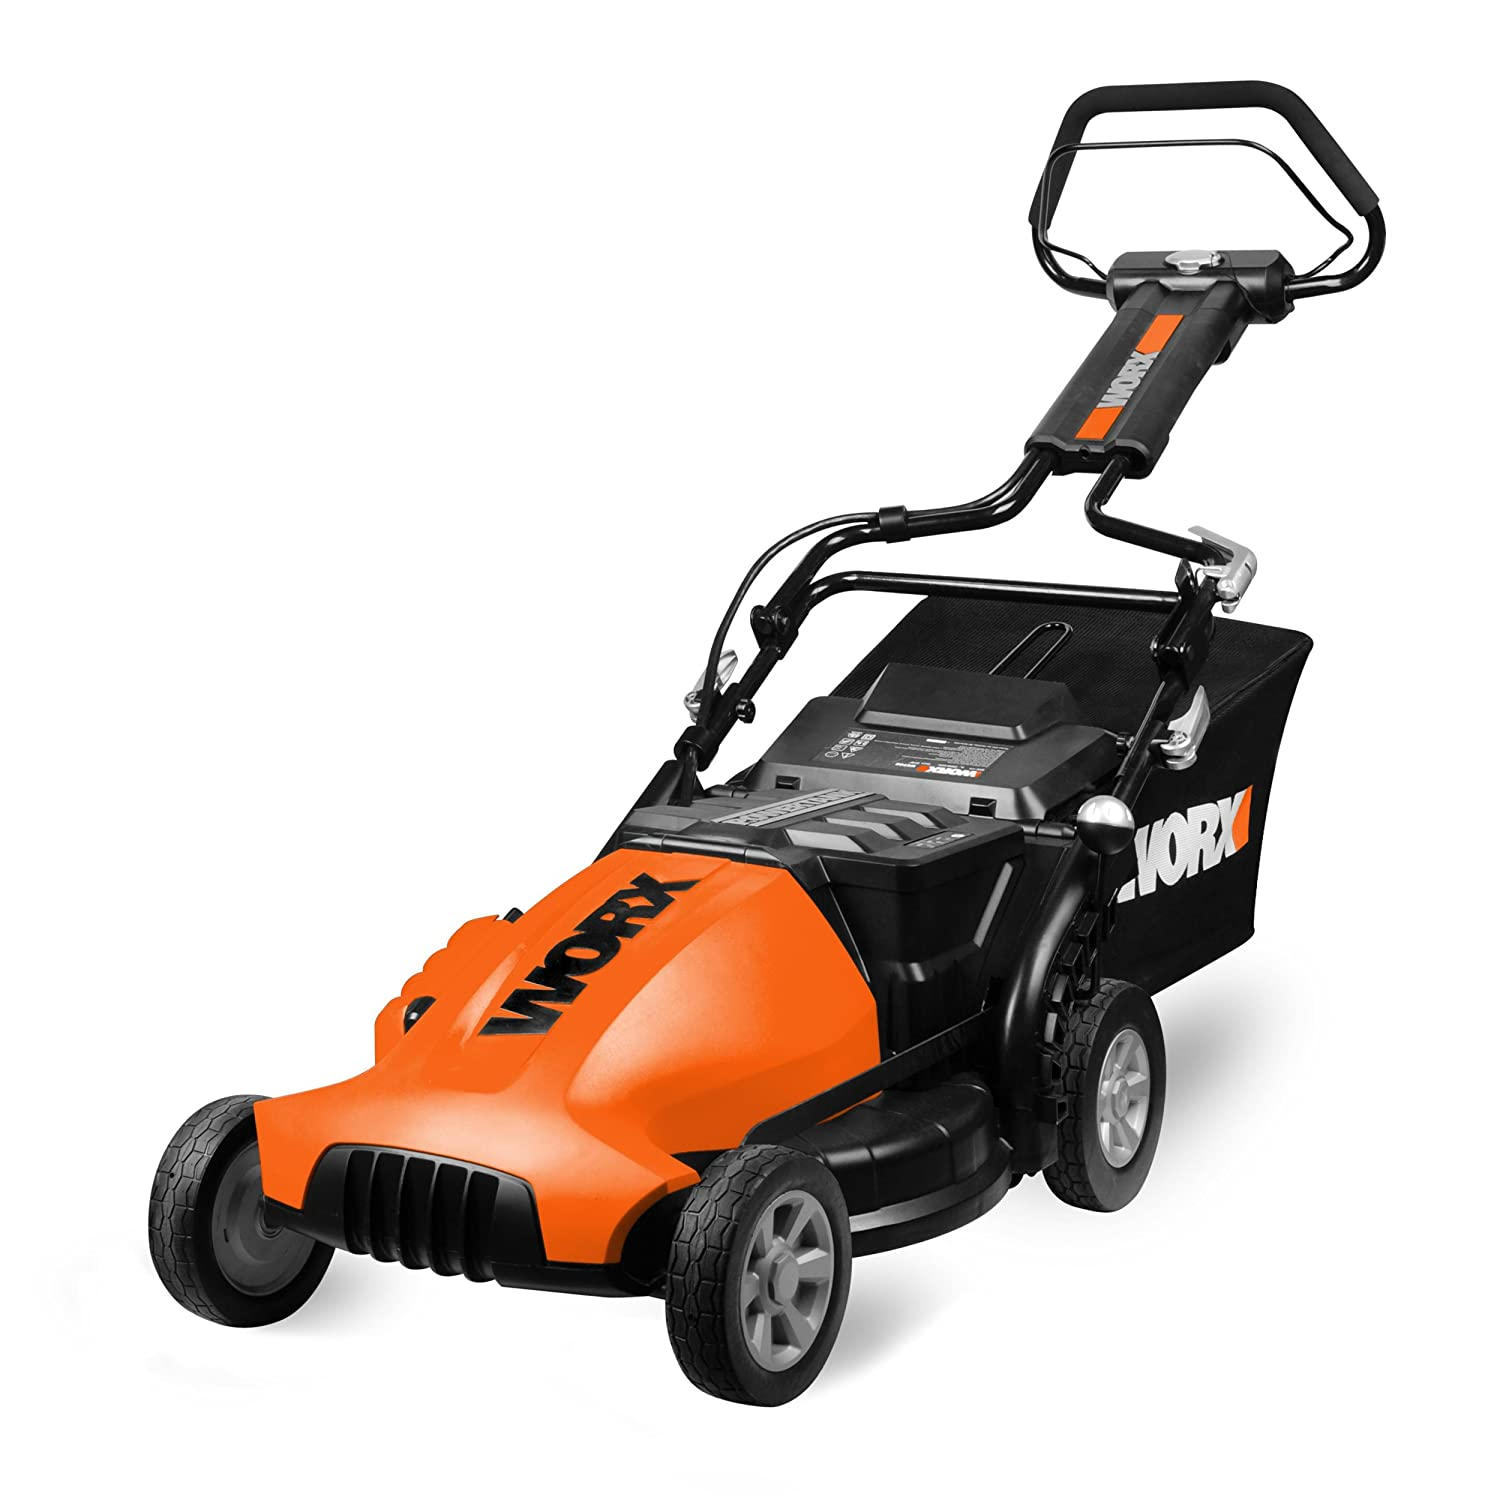 WORX ECO WG780 19-Inch 24-Volt Cordless Electric Lawn Mower Review